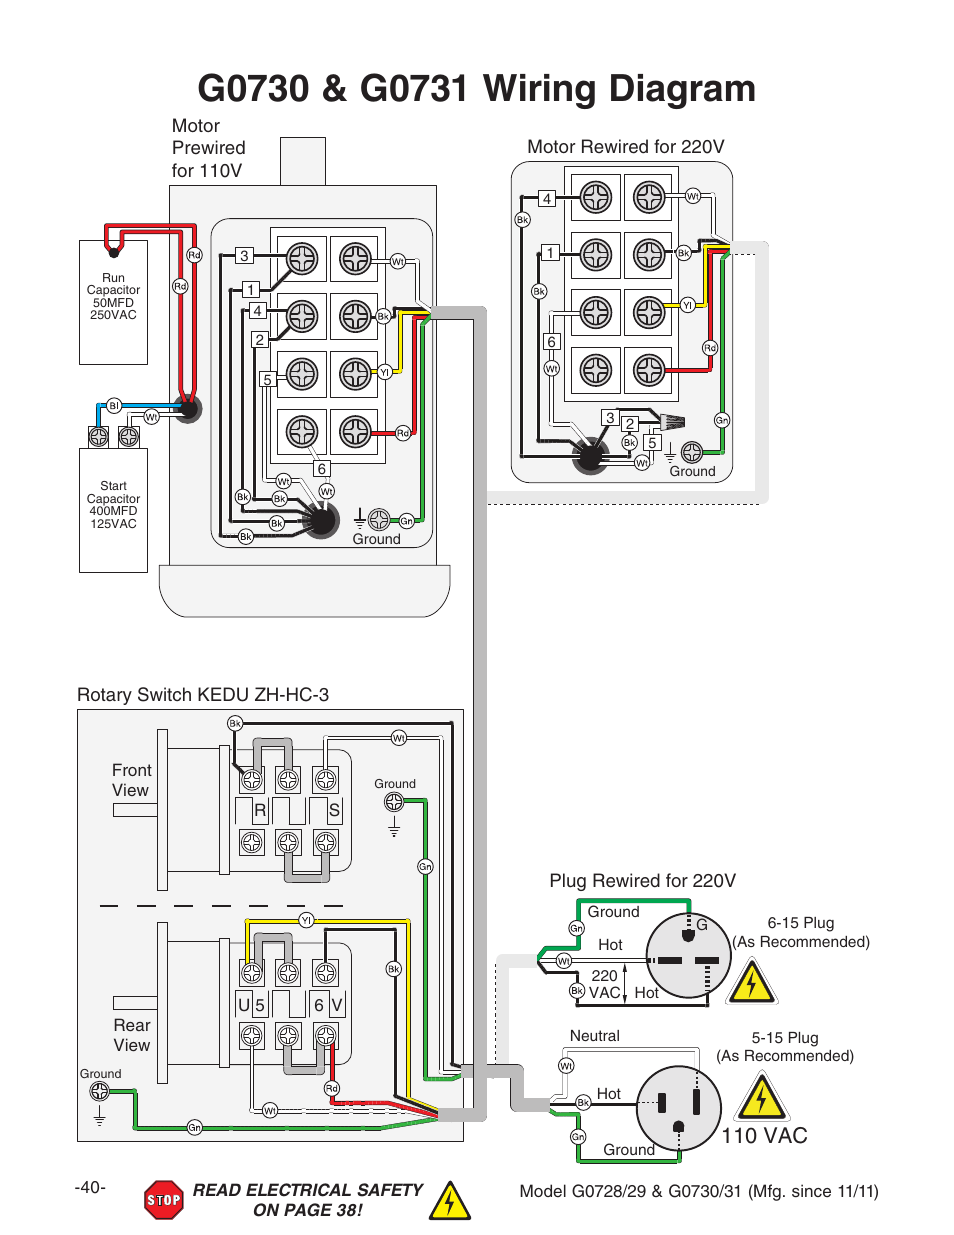 Kedu Zh Hc 3 Switches Wiring Schematics Auto Electrical Wiring Diagram